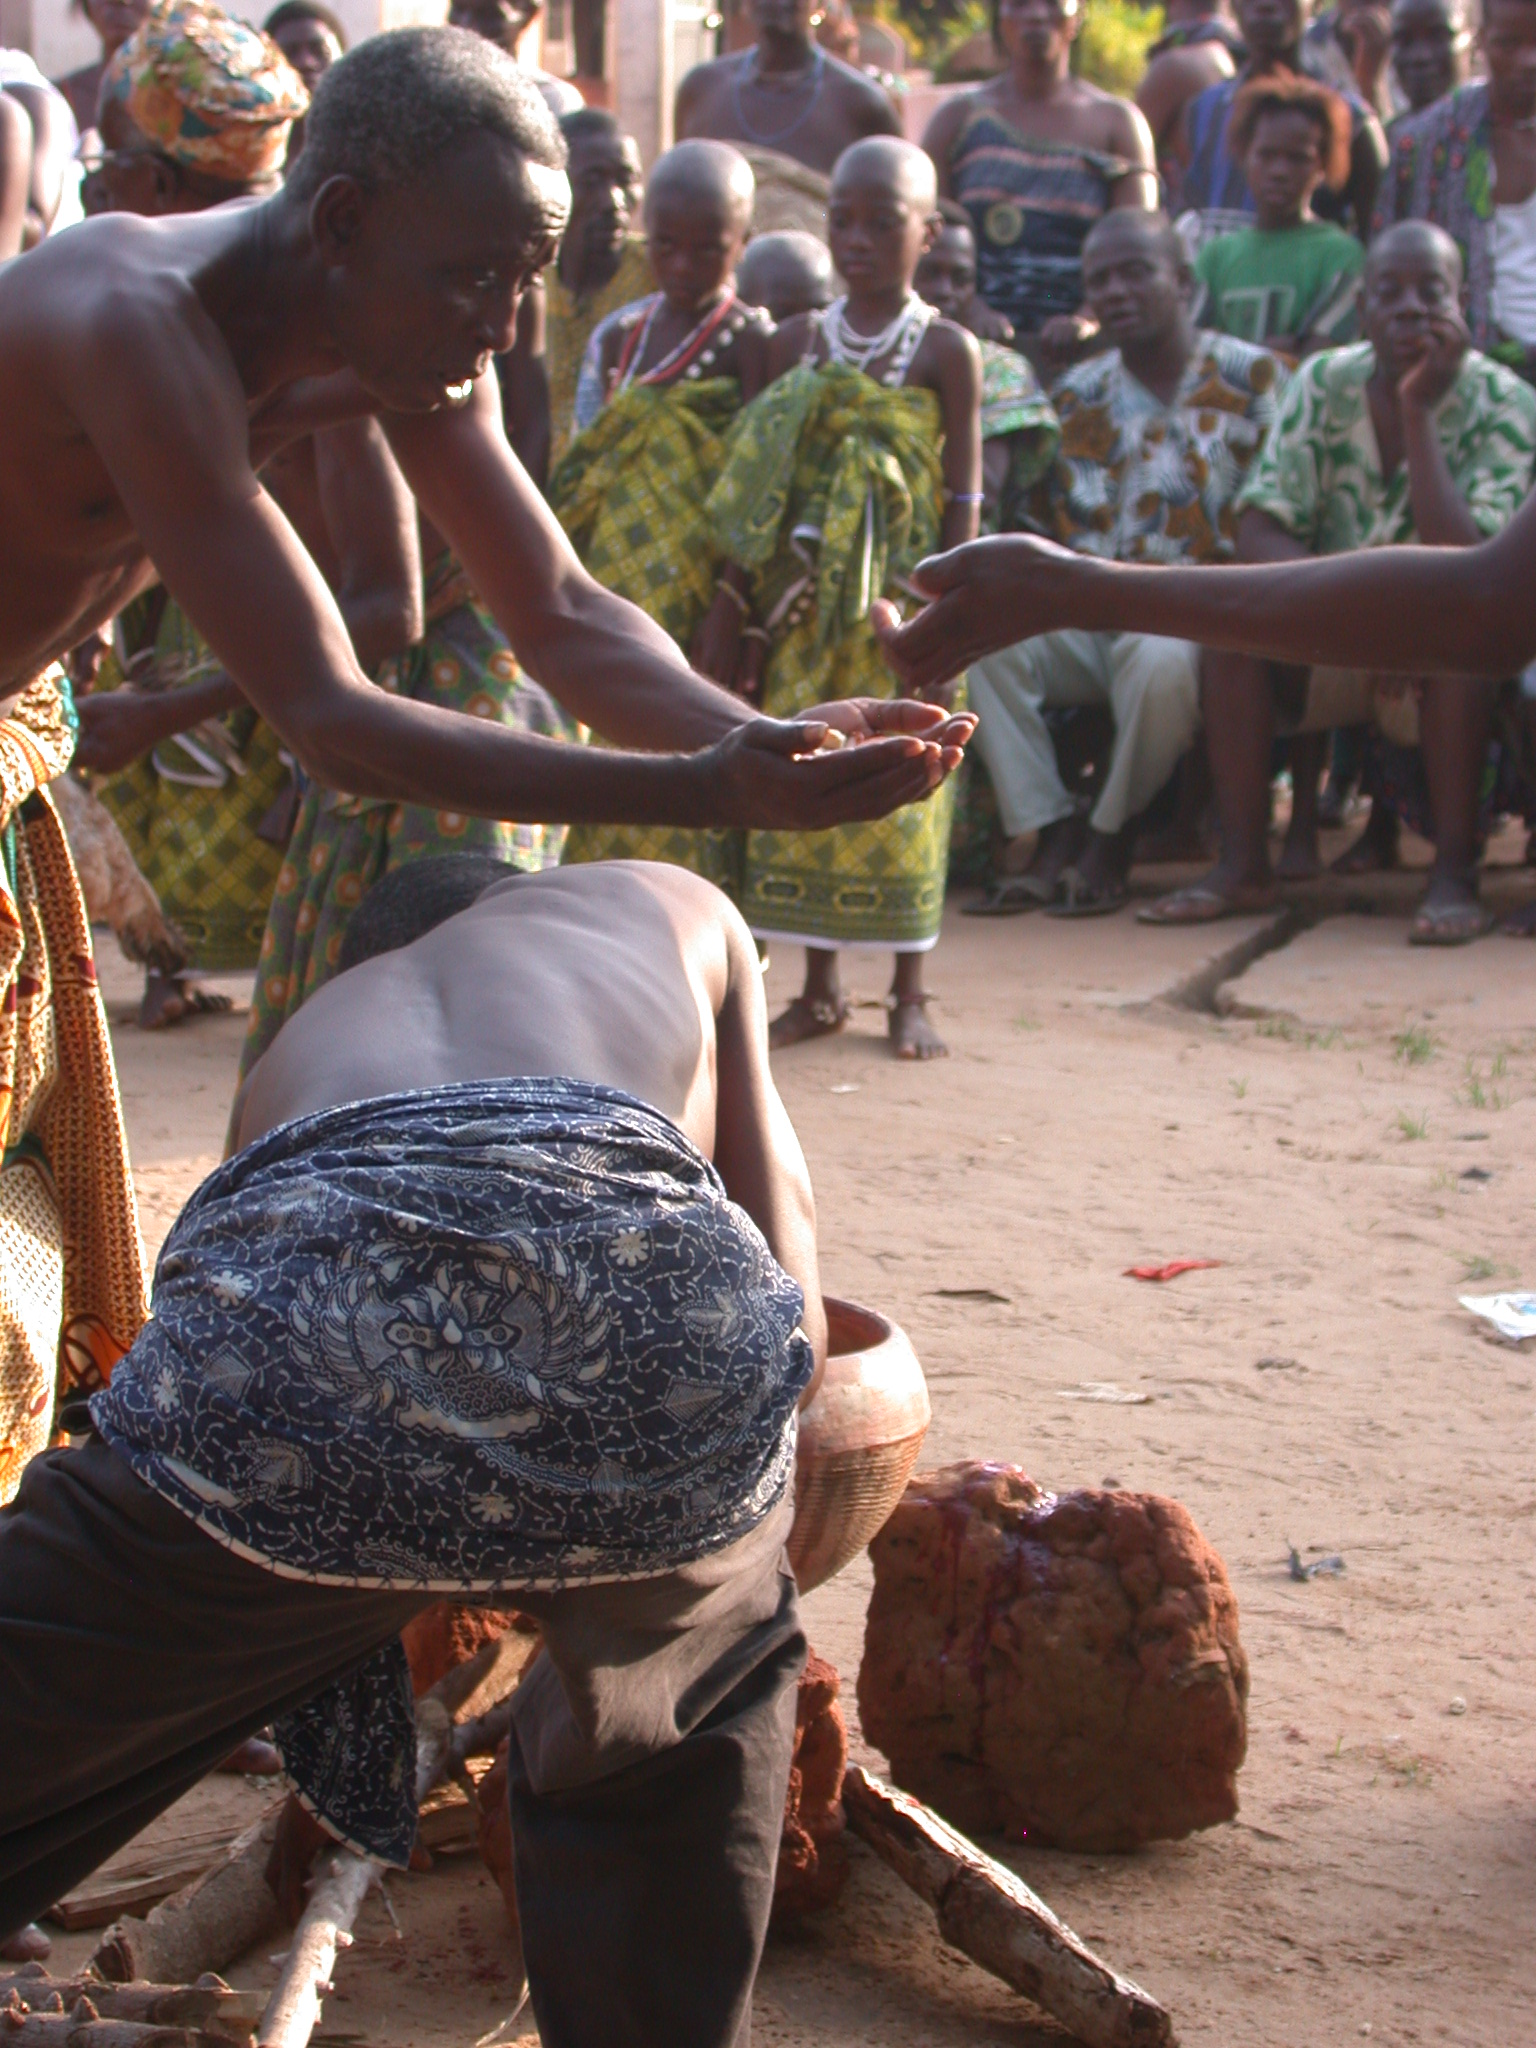 Seasoning and Cooking the Sacrificial Meat, Vodun Ritual, Ouidah, Benin